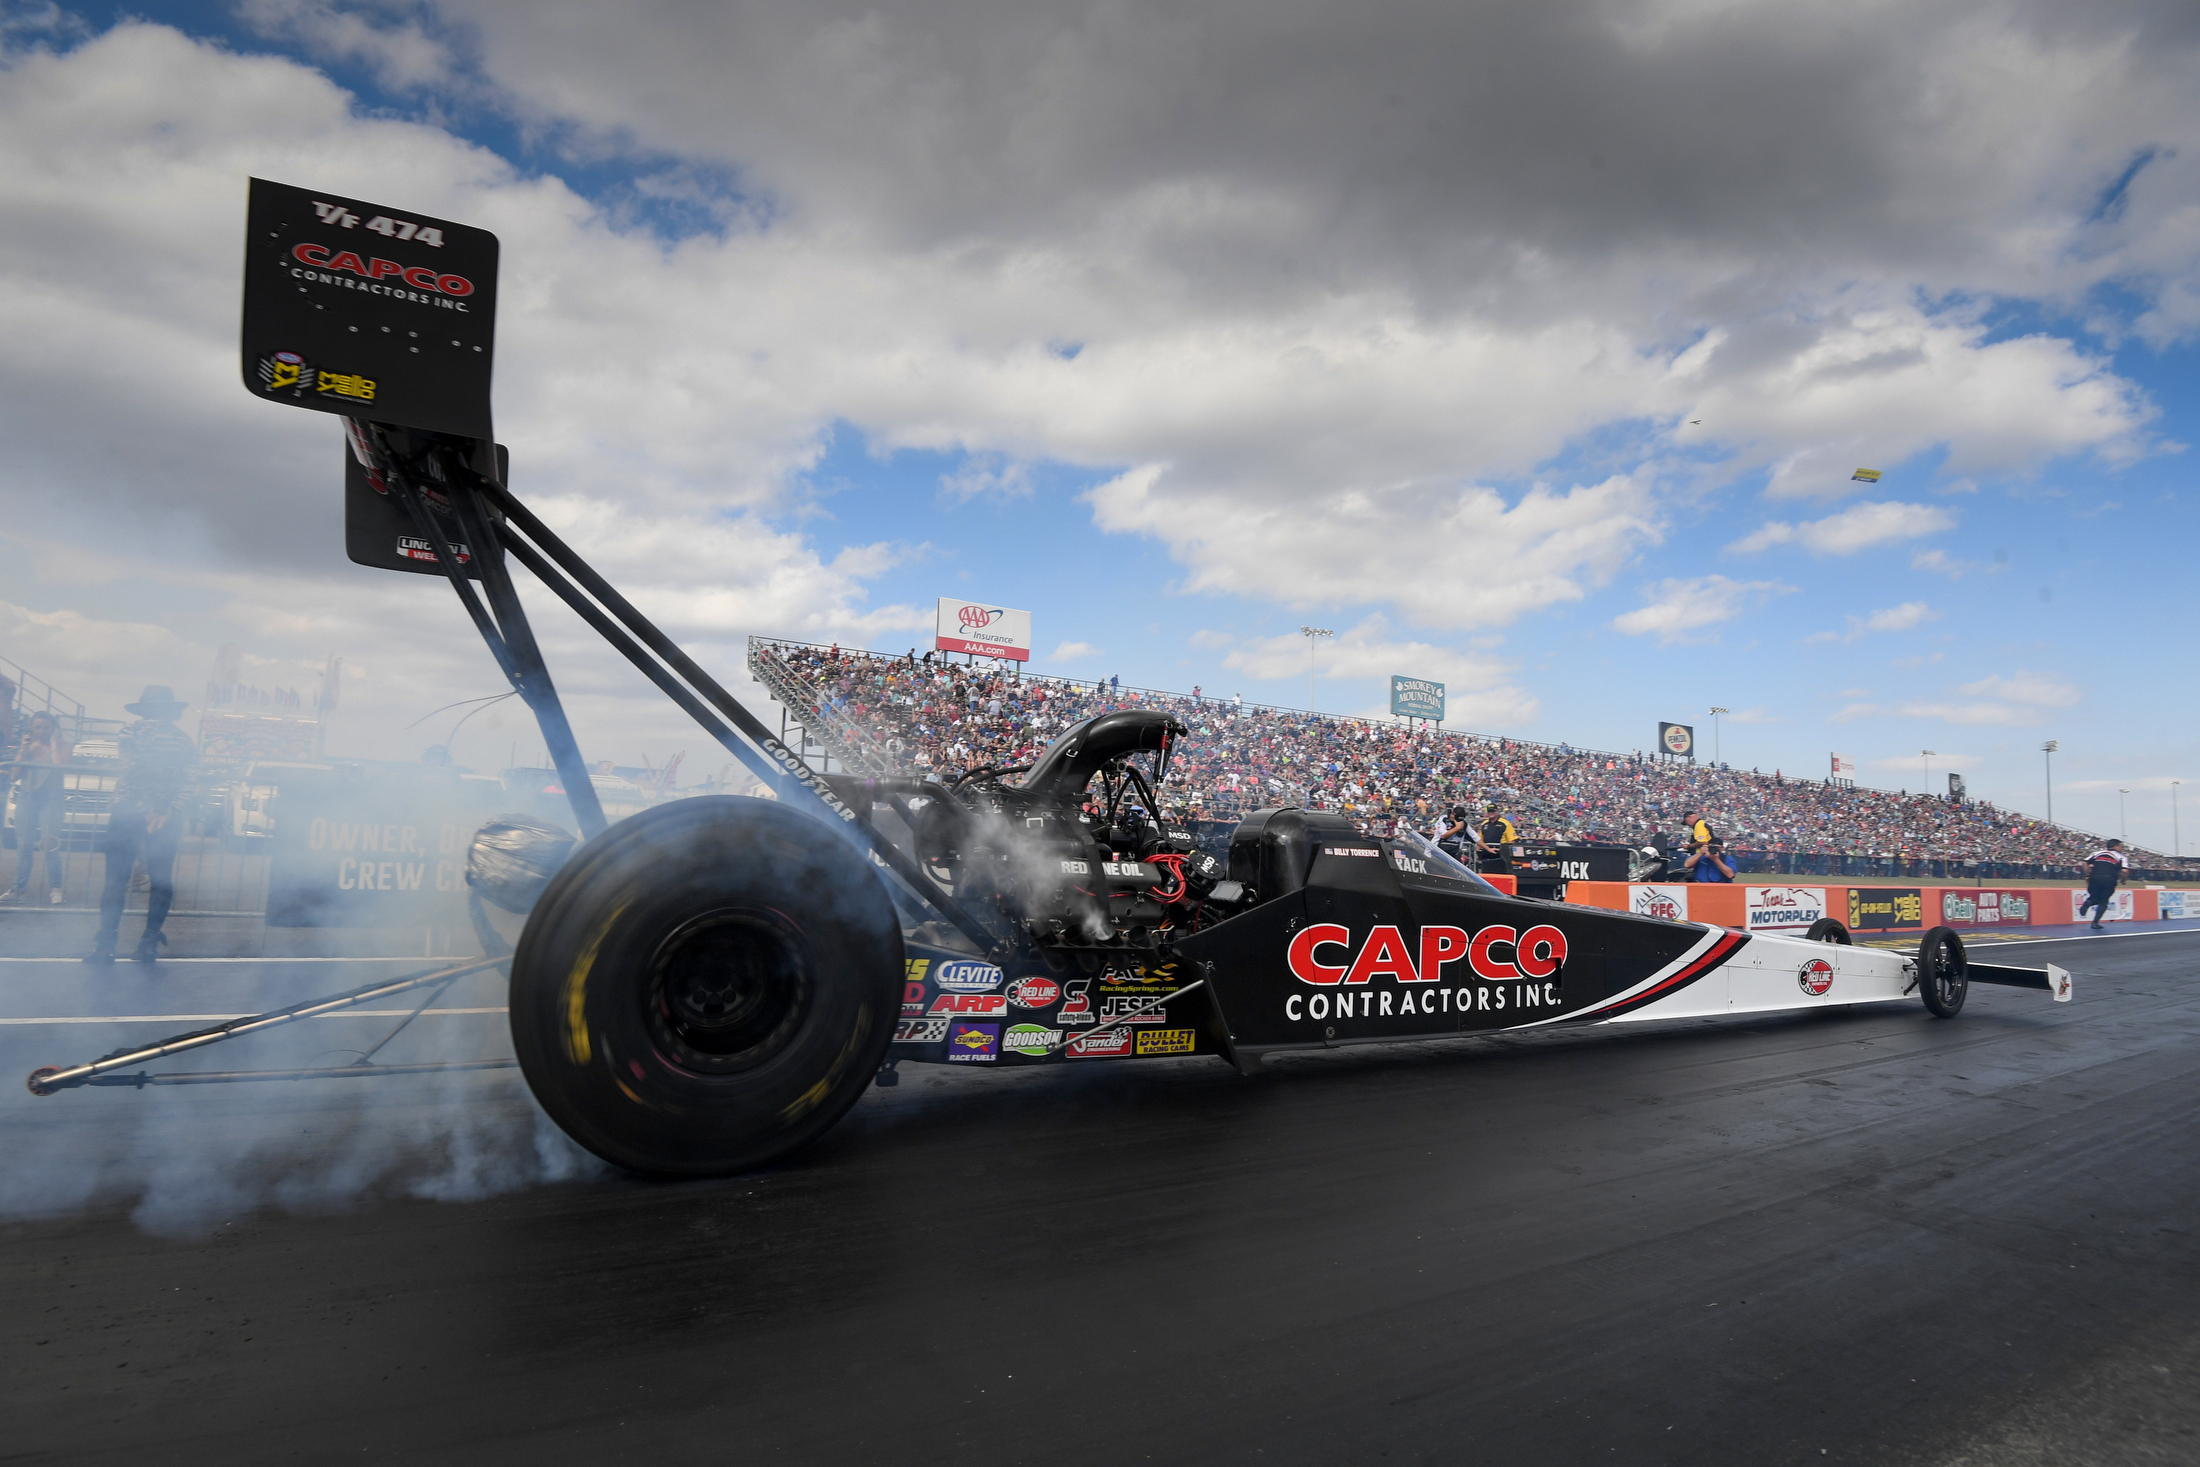 Capco Contractors Top Fuel Dragster pilot Billy Torrence racing on Sunday at the AAA Texas NHRA FallNationals